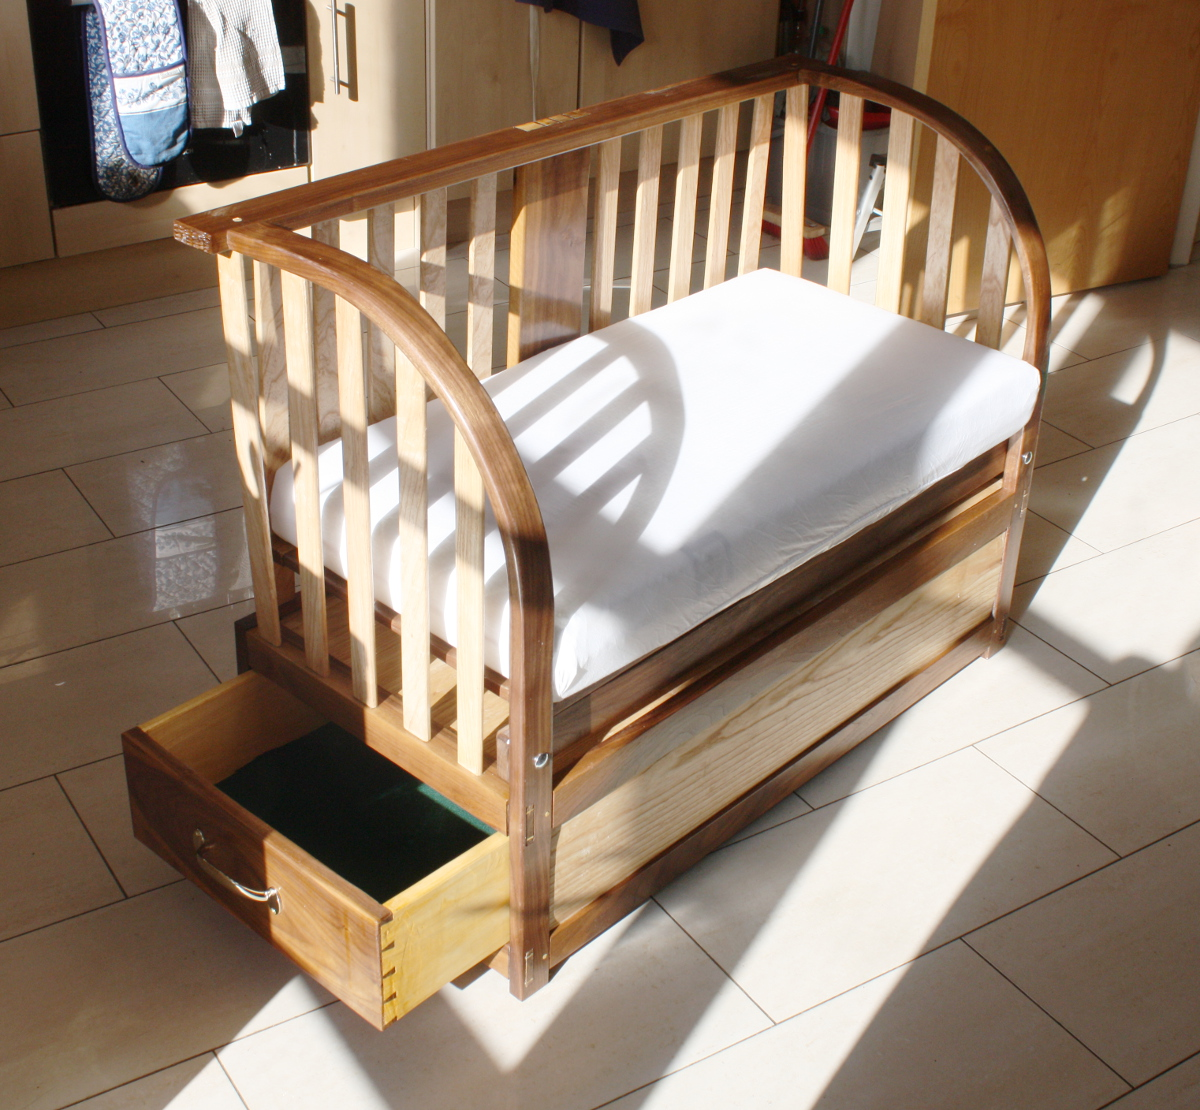 Finished cot